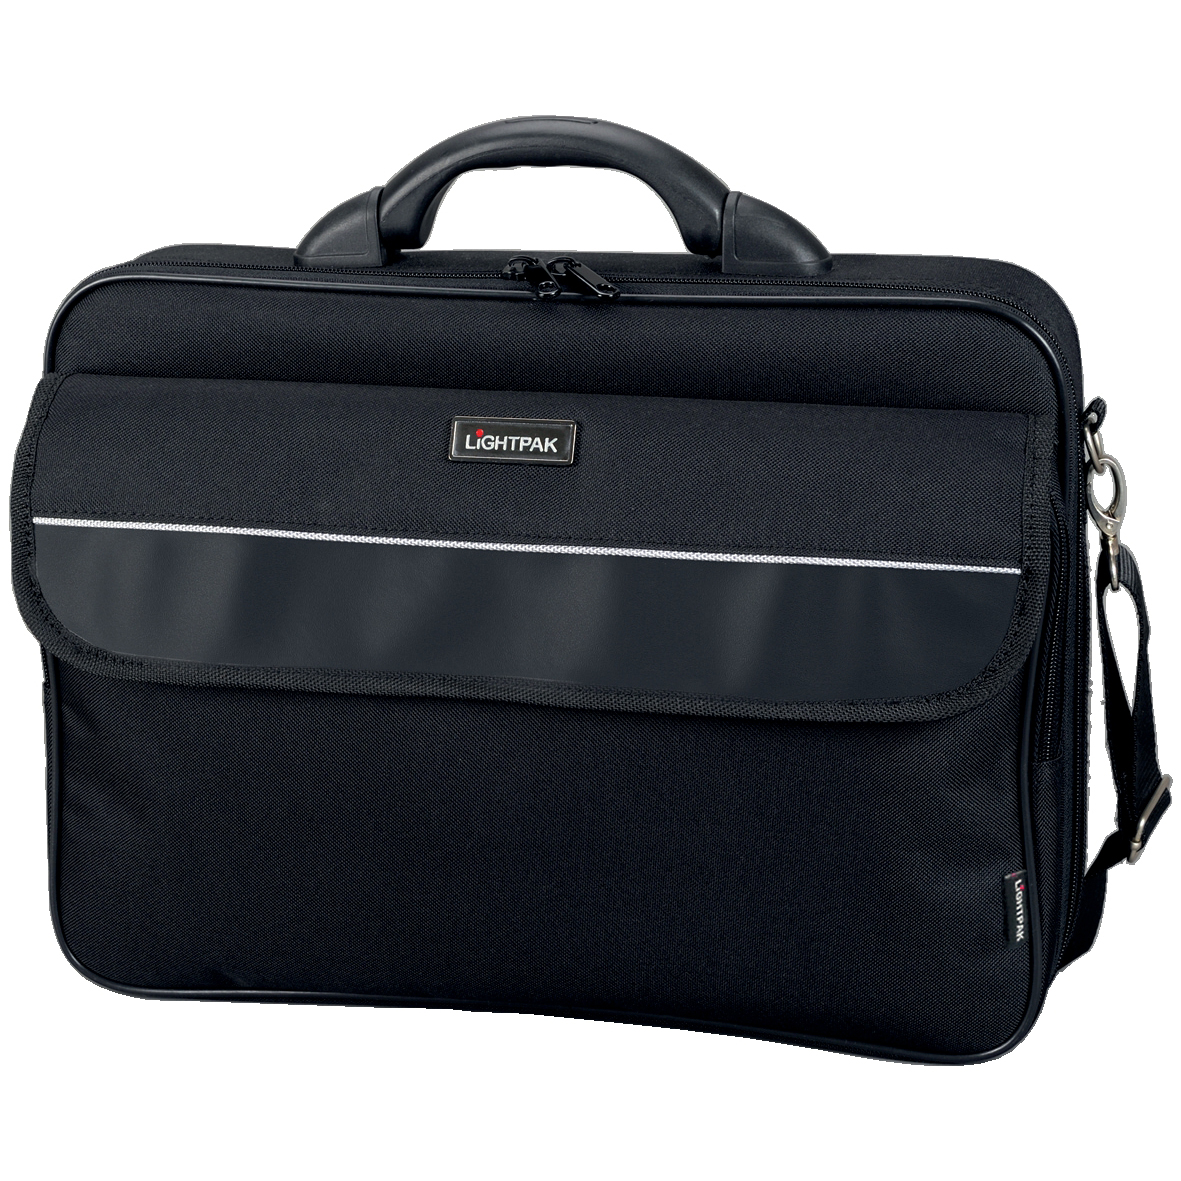 Lightpak Elite Large Laptop Case Nylon Capacity 17in Black Ref 46111